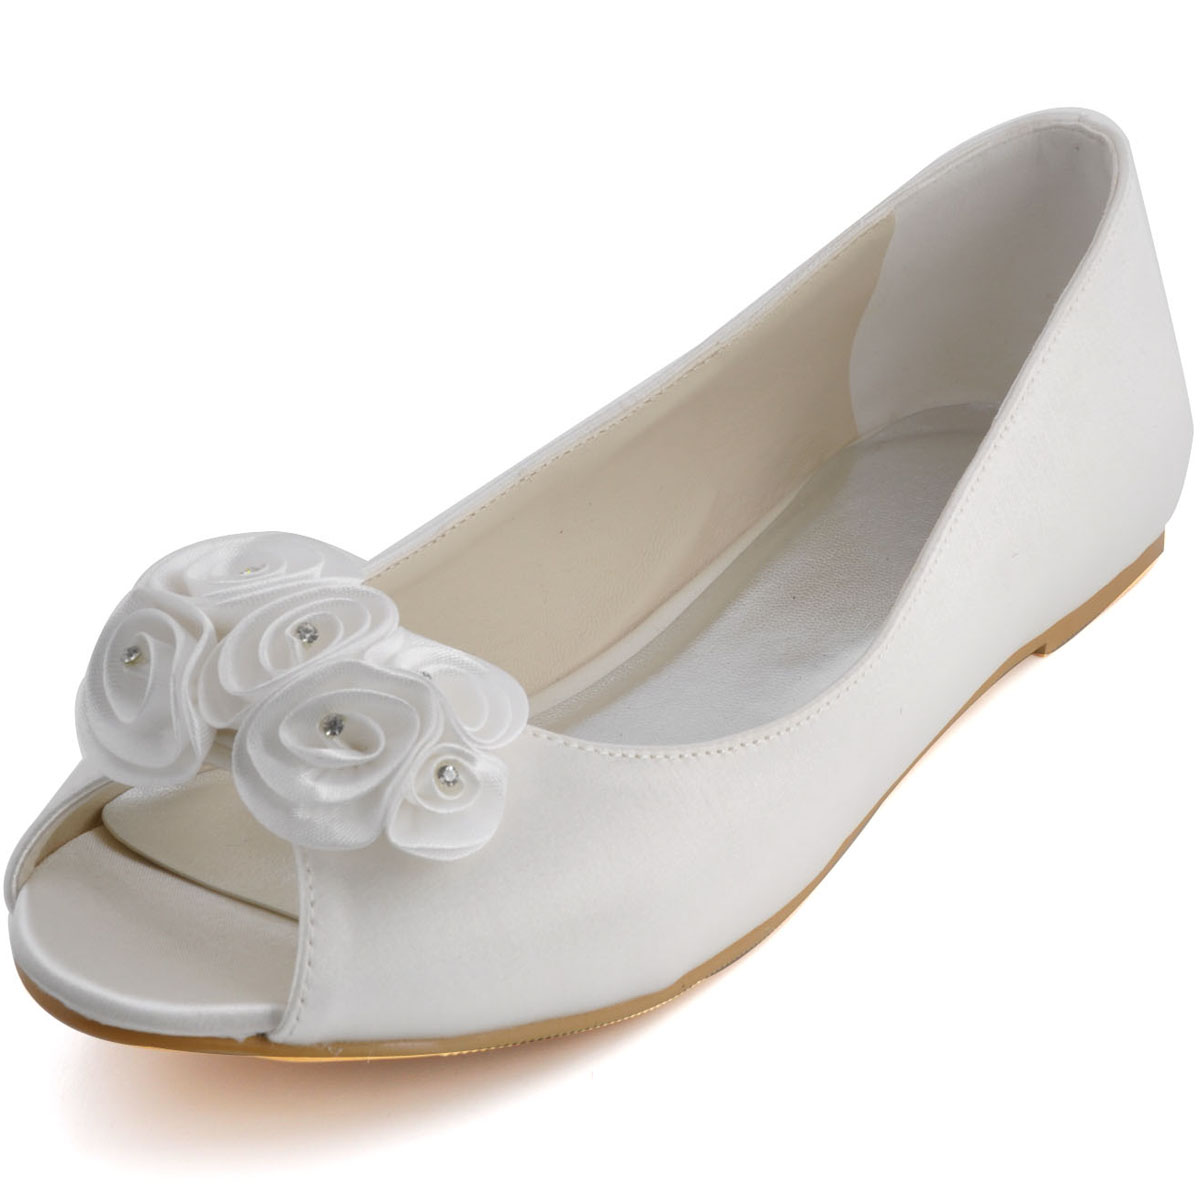 flat wedding shoes for bride photo - 1